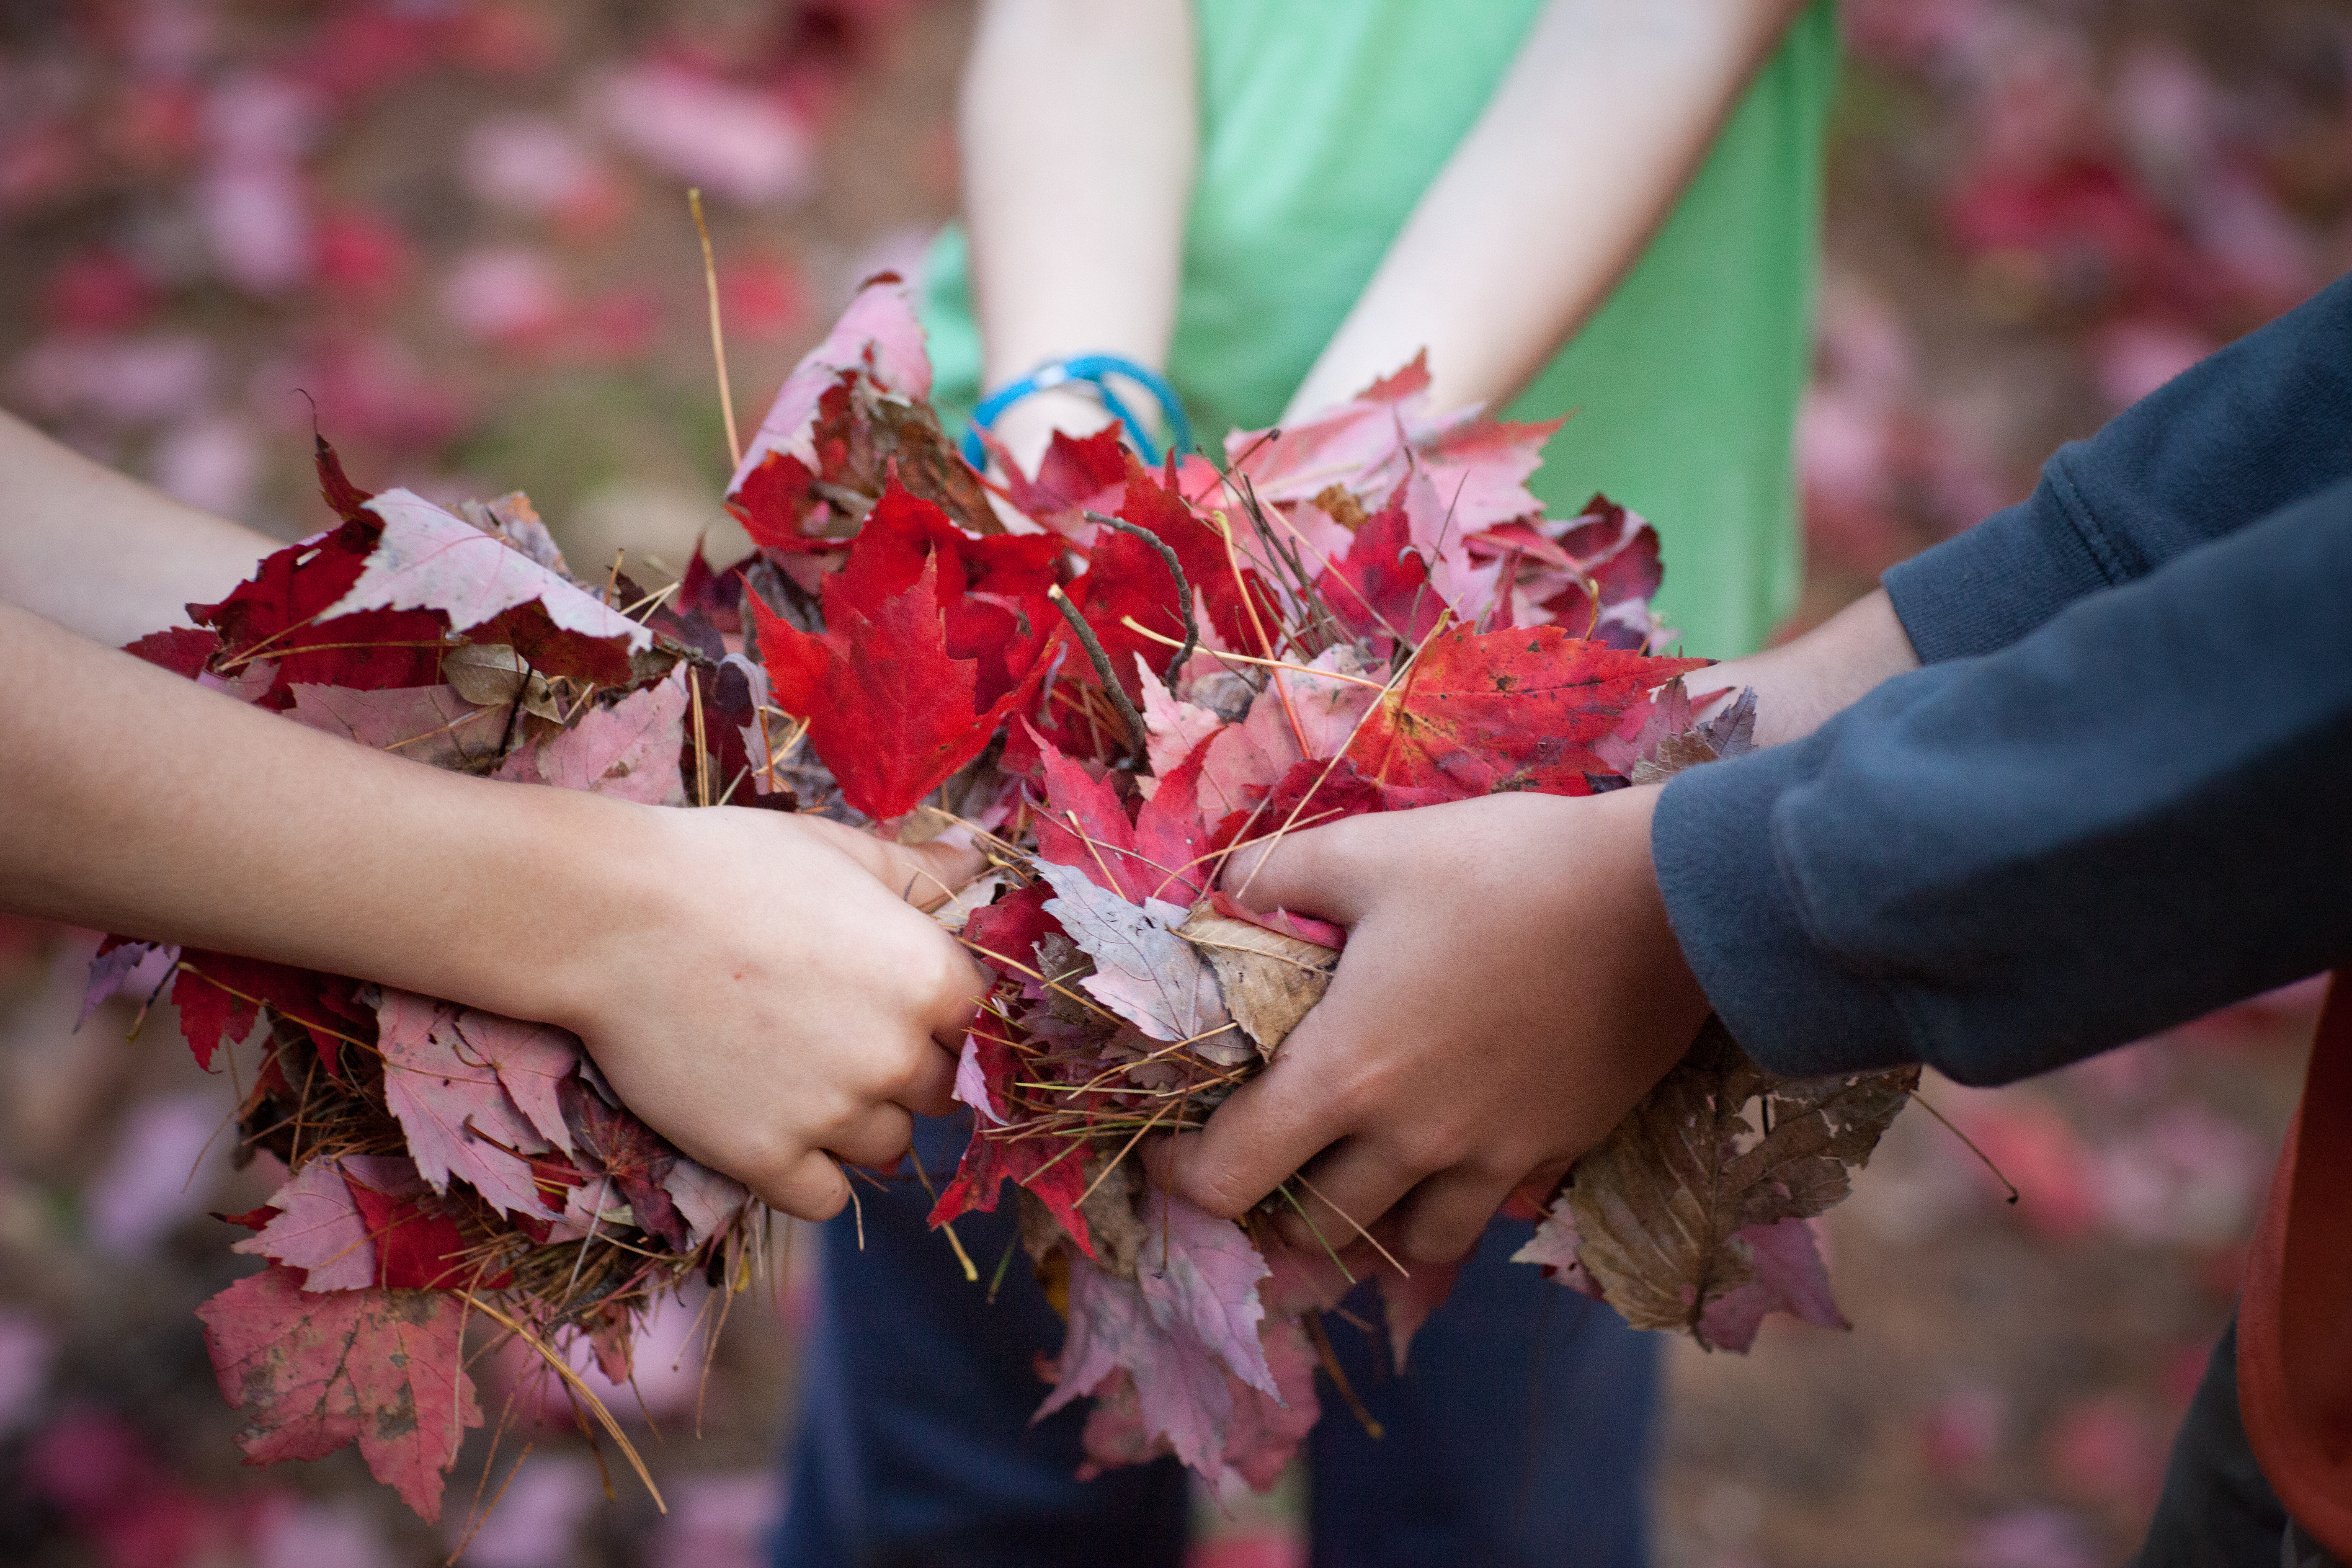 Three pairs of children's hands hold a pile of red autumn leaves at Hudson Farm in Hanover, NH.